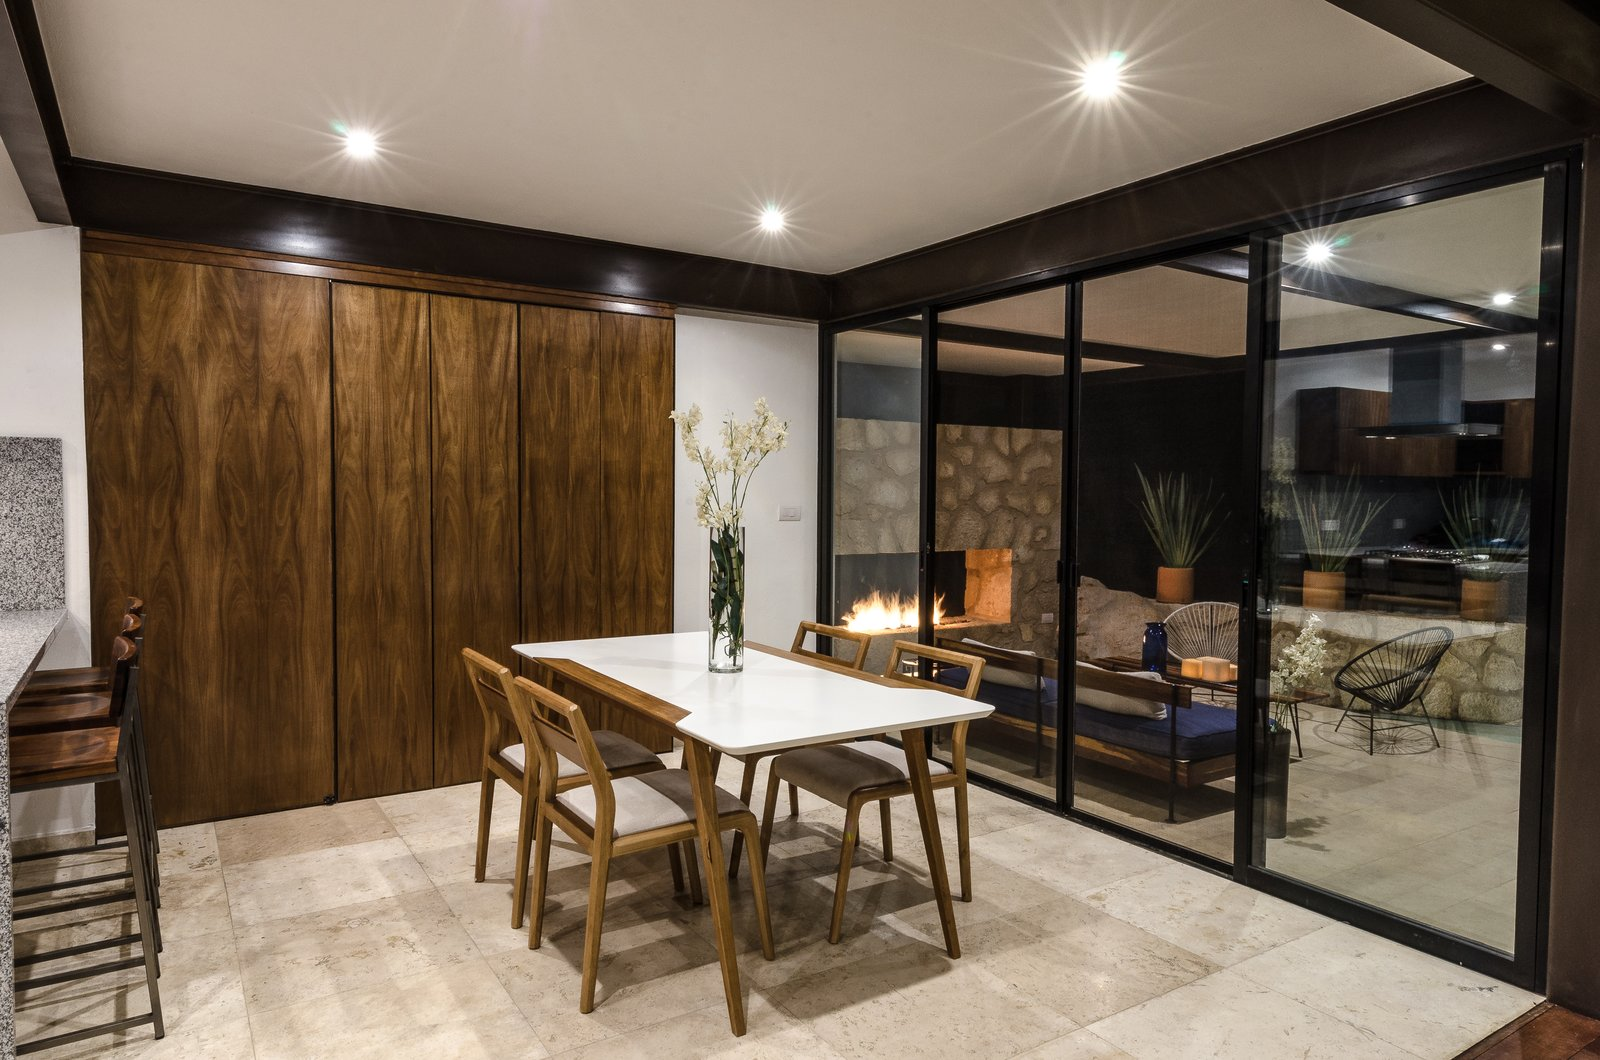 Dinning and terrace Tagged: Dining Room, Two-Sided Fireplace, Table, Travertine Floor, Chair, Storage, and Ceiling Lighting.  CQ12 by tescala